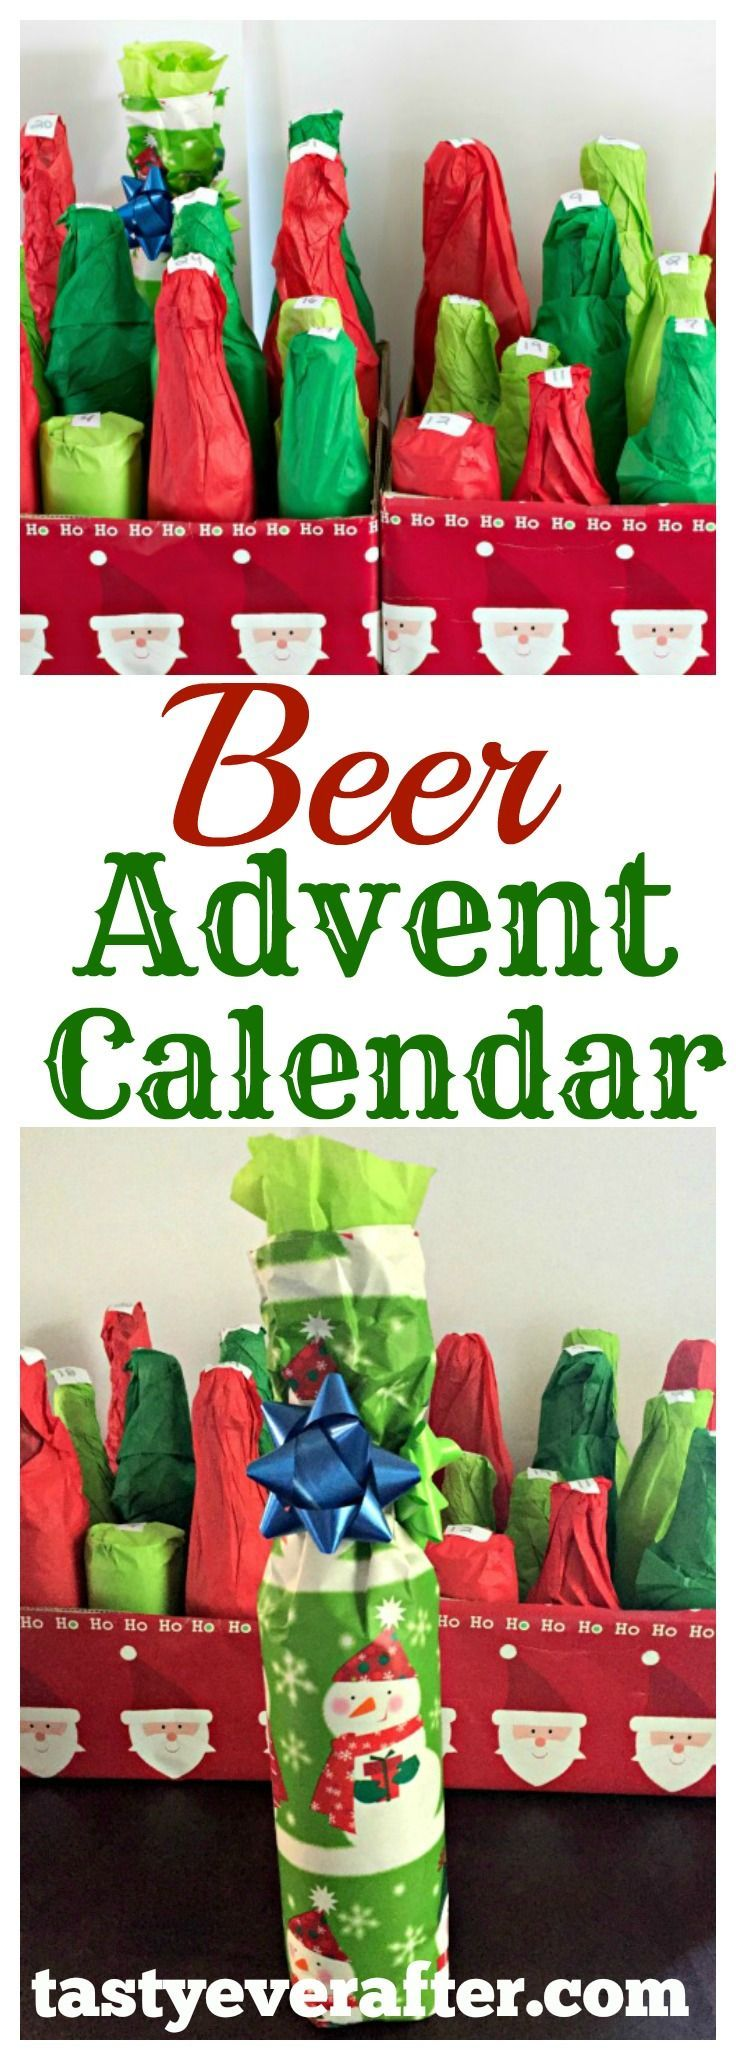 Unique Advent Calendar Ideas : Unique advent calendar for men ideas on pinterest